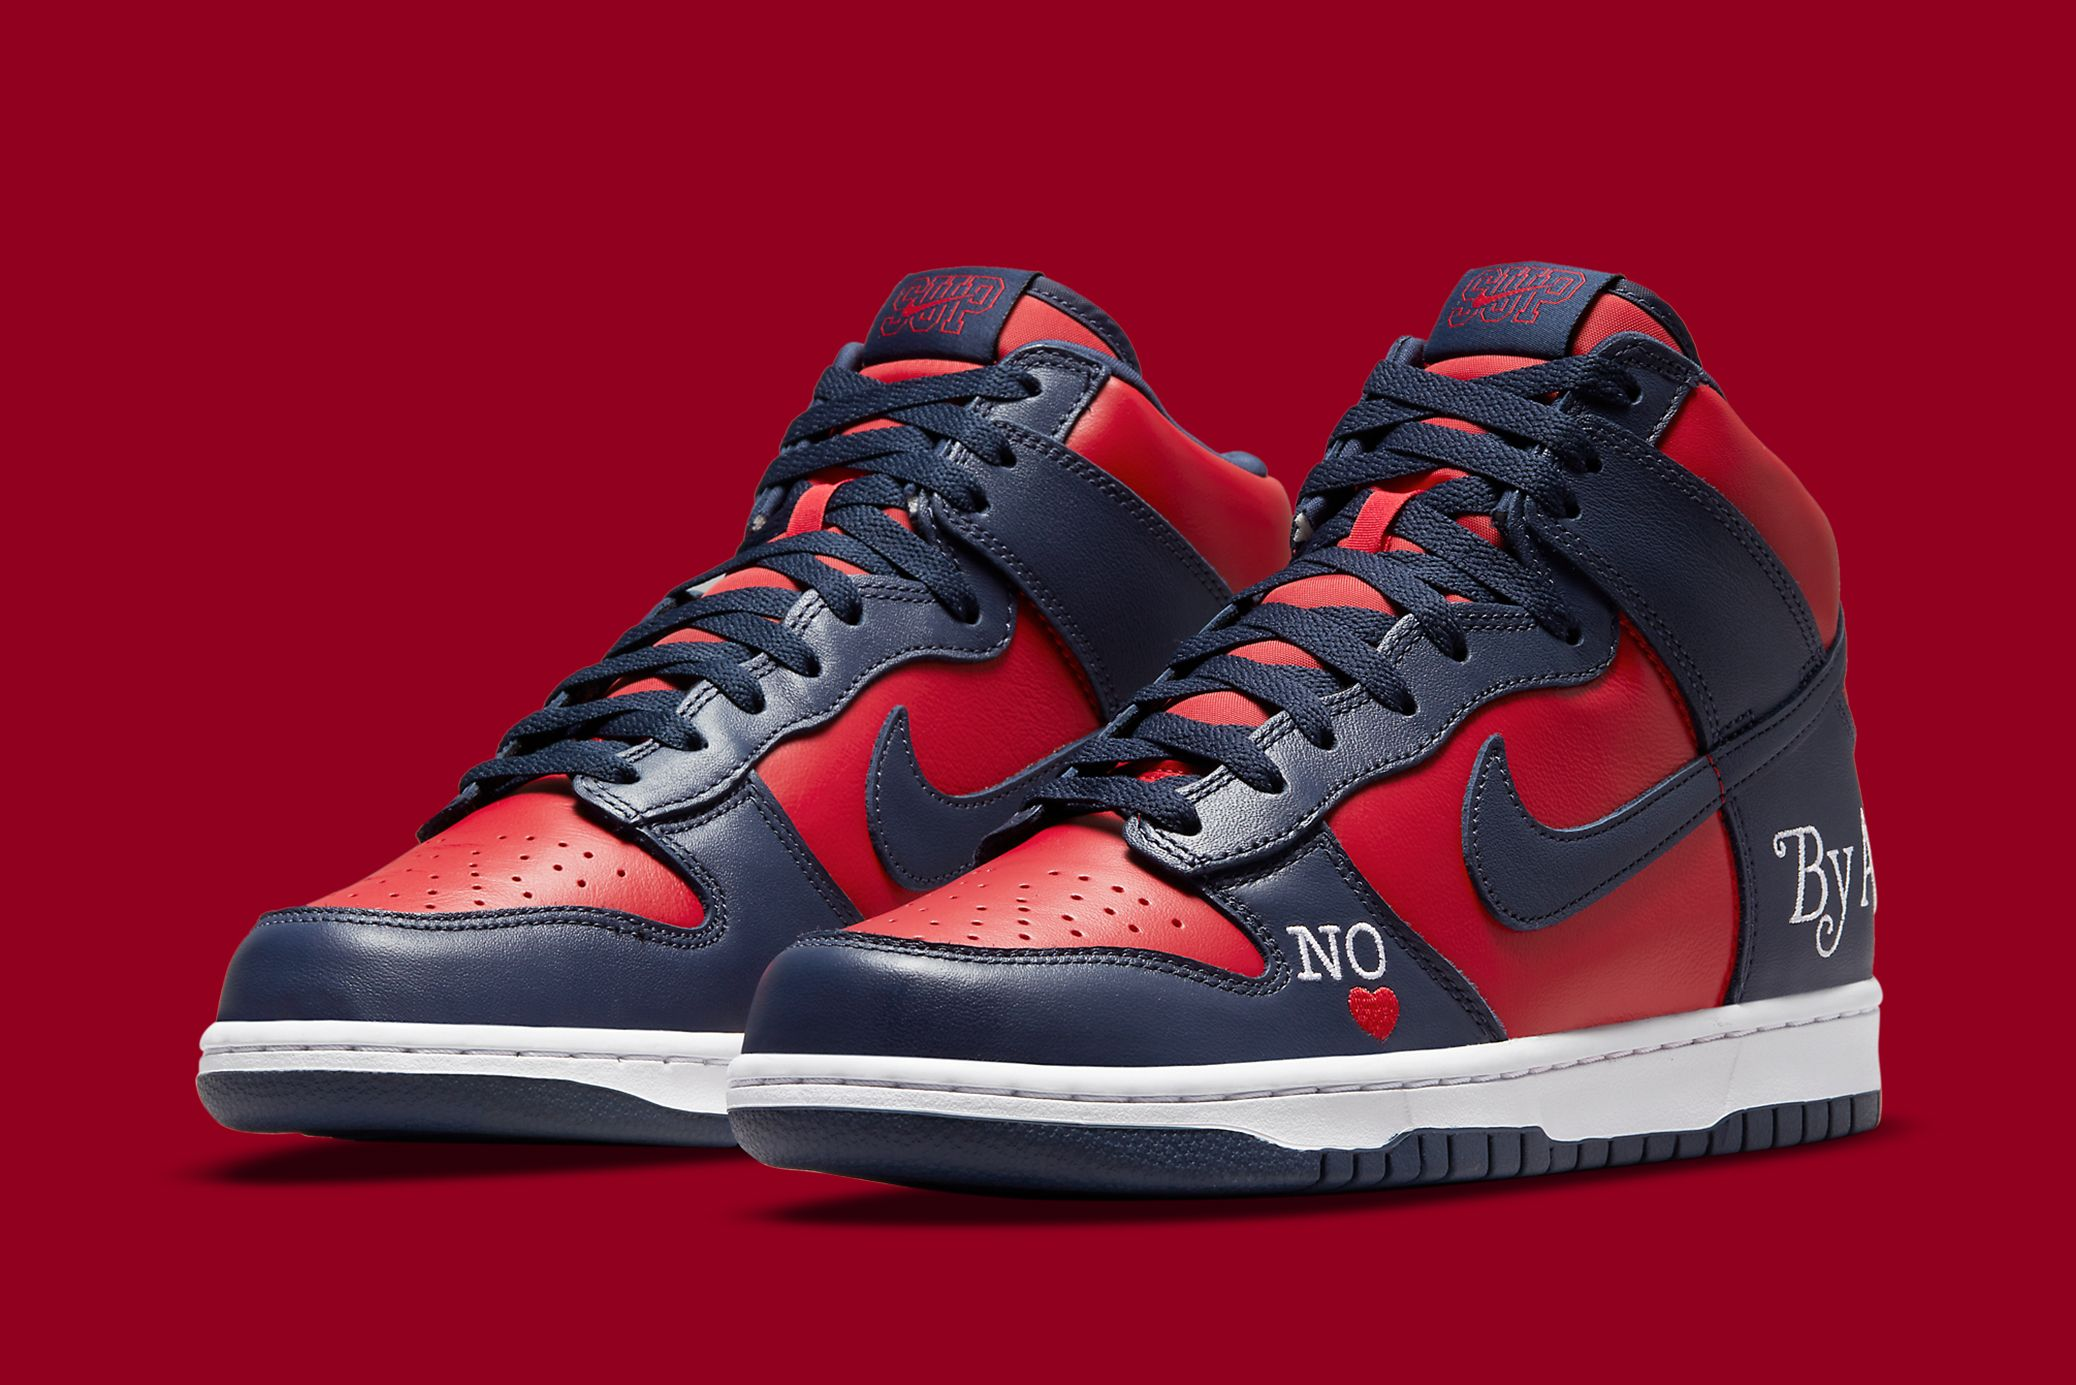 Supreme x Nike SB Dunk High 'By Any Means' in Navy/Red